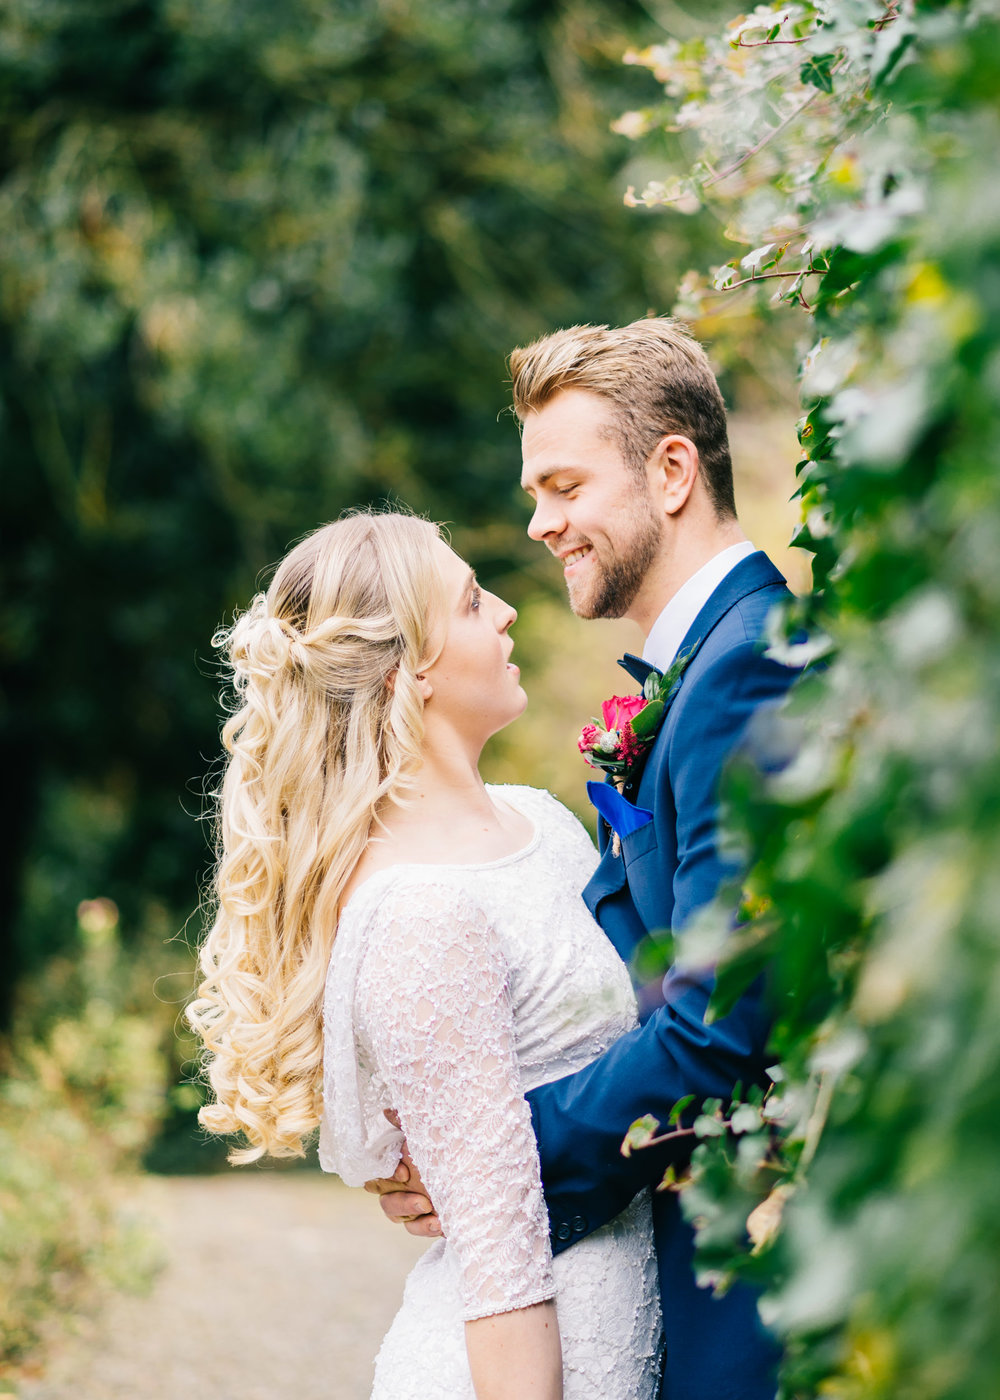 Mitton Hall Wedding Photography- Laura Duggleby Photographer6